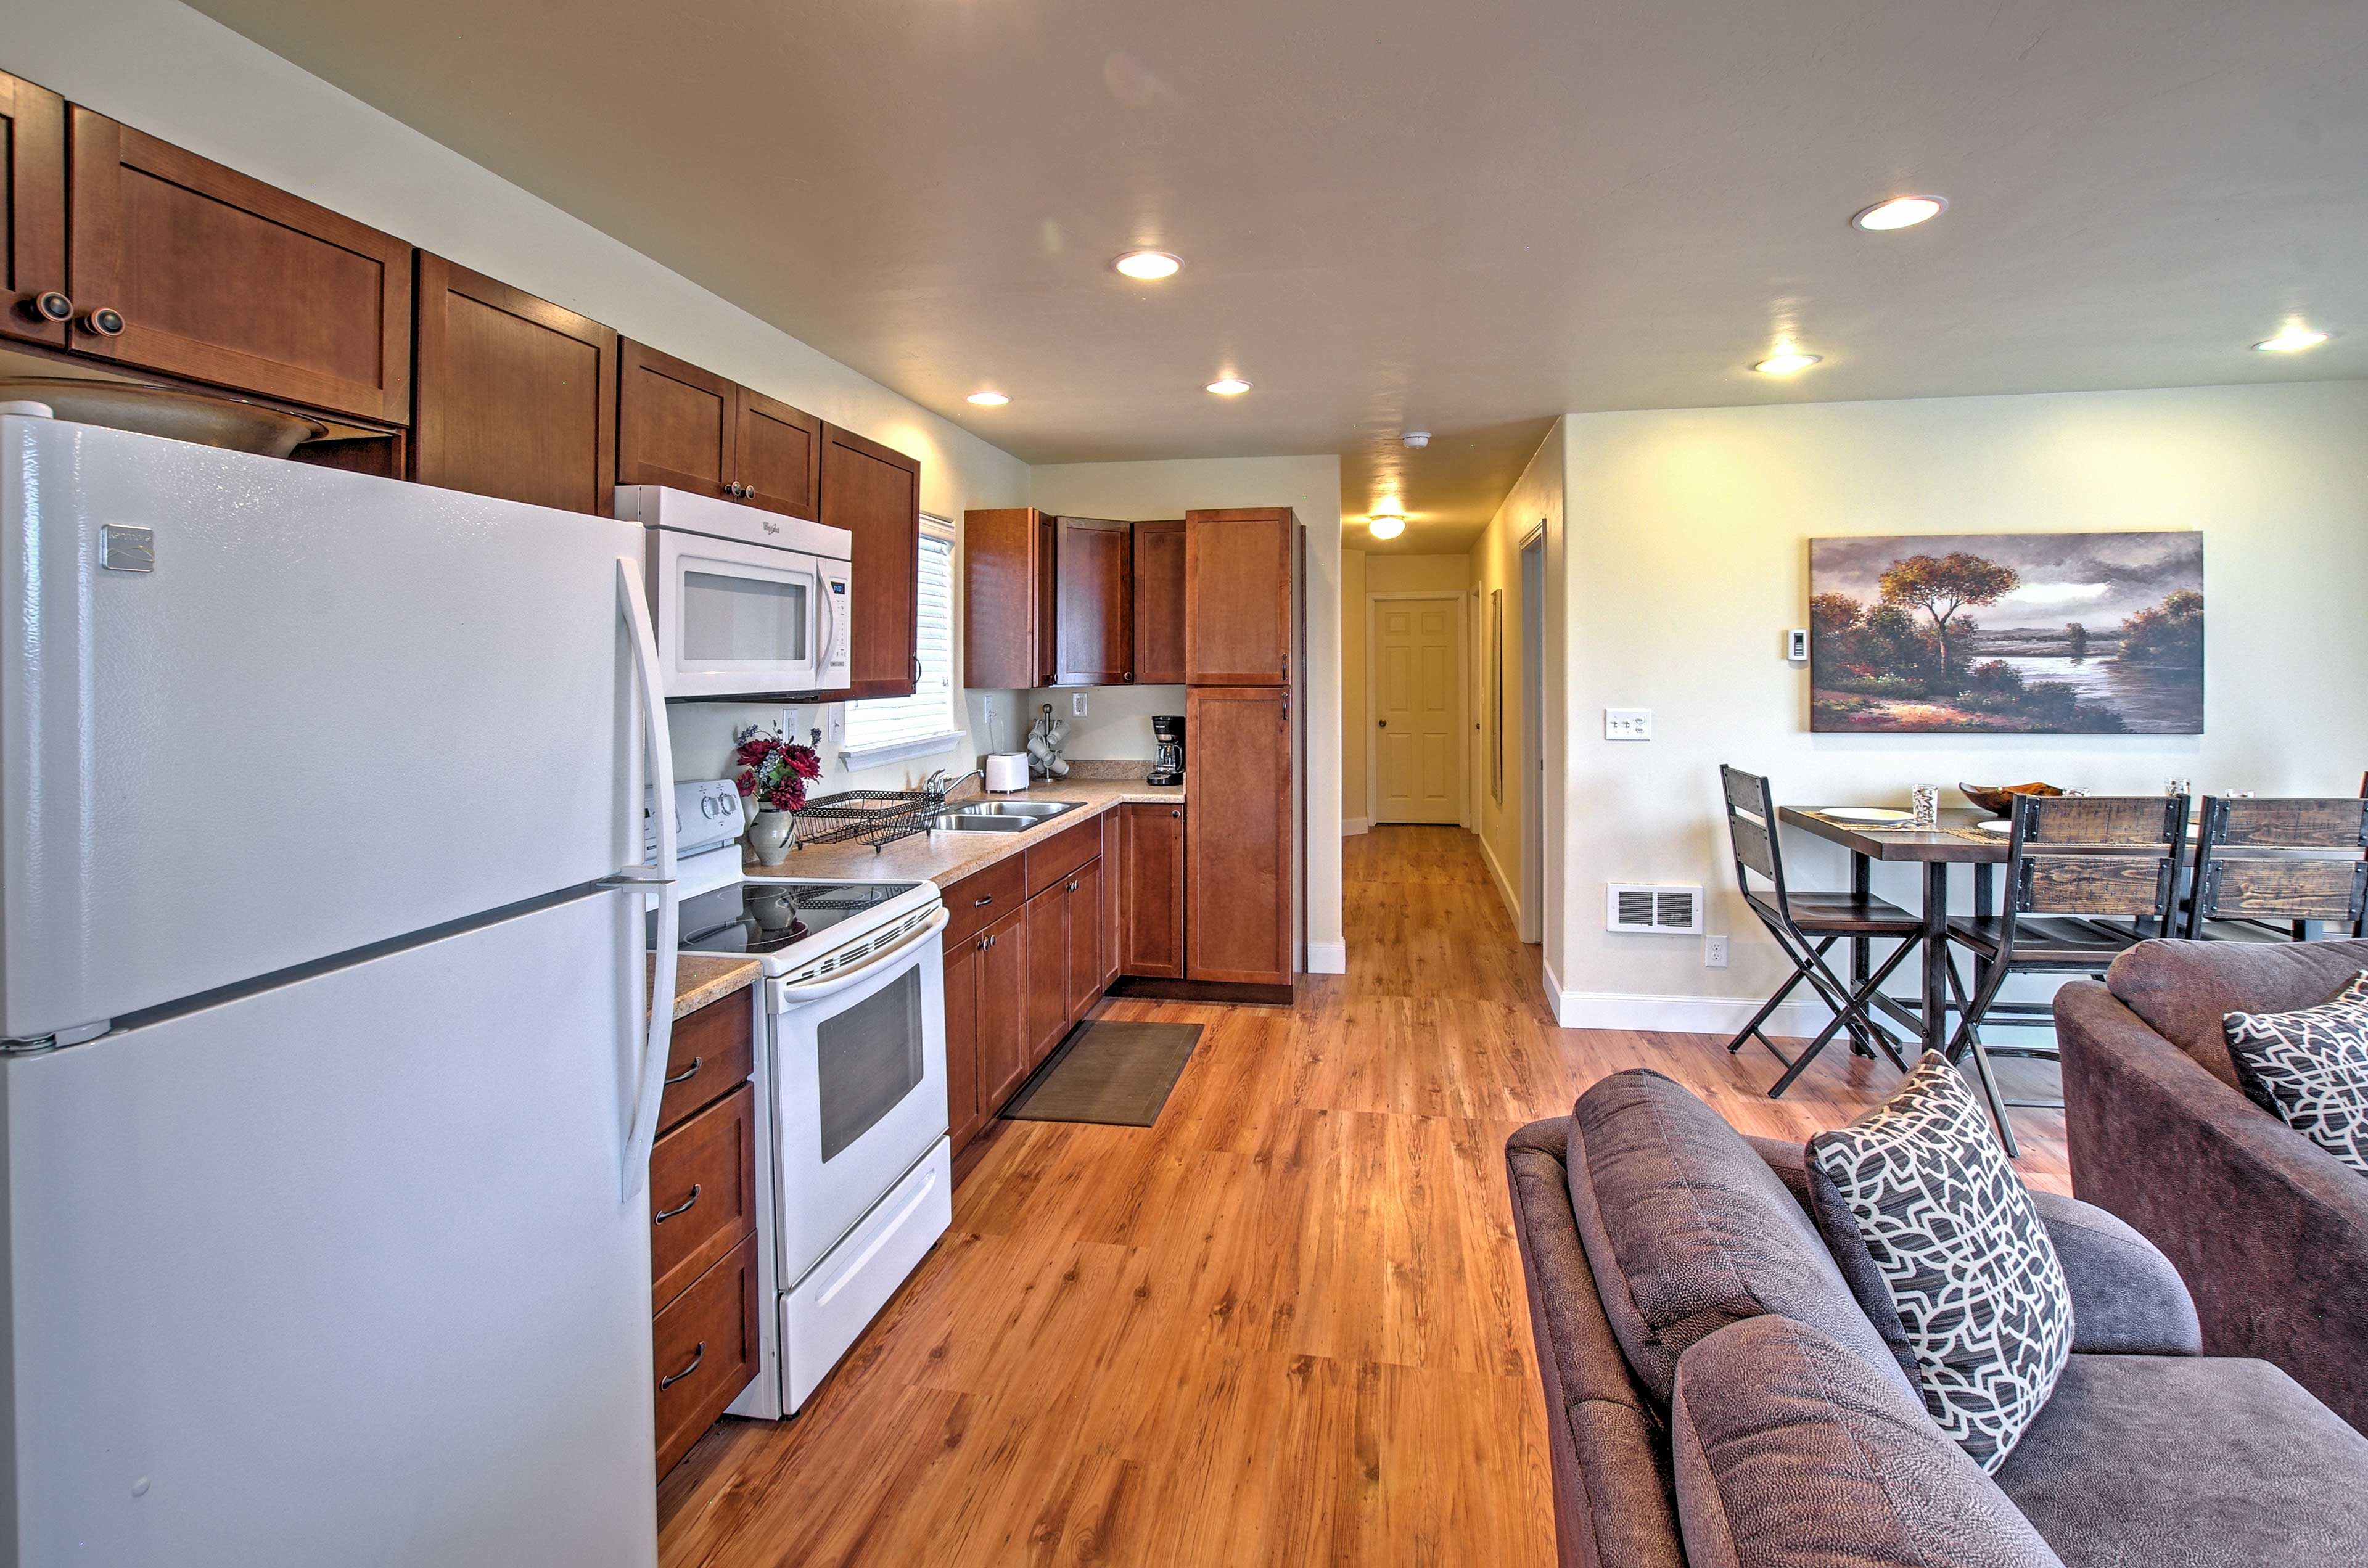 The well equipped kitchen is perfect for preparing home-made dishes.